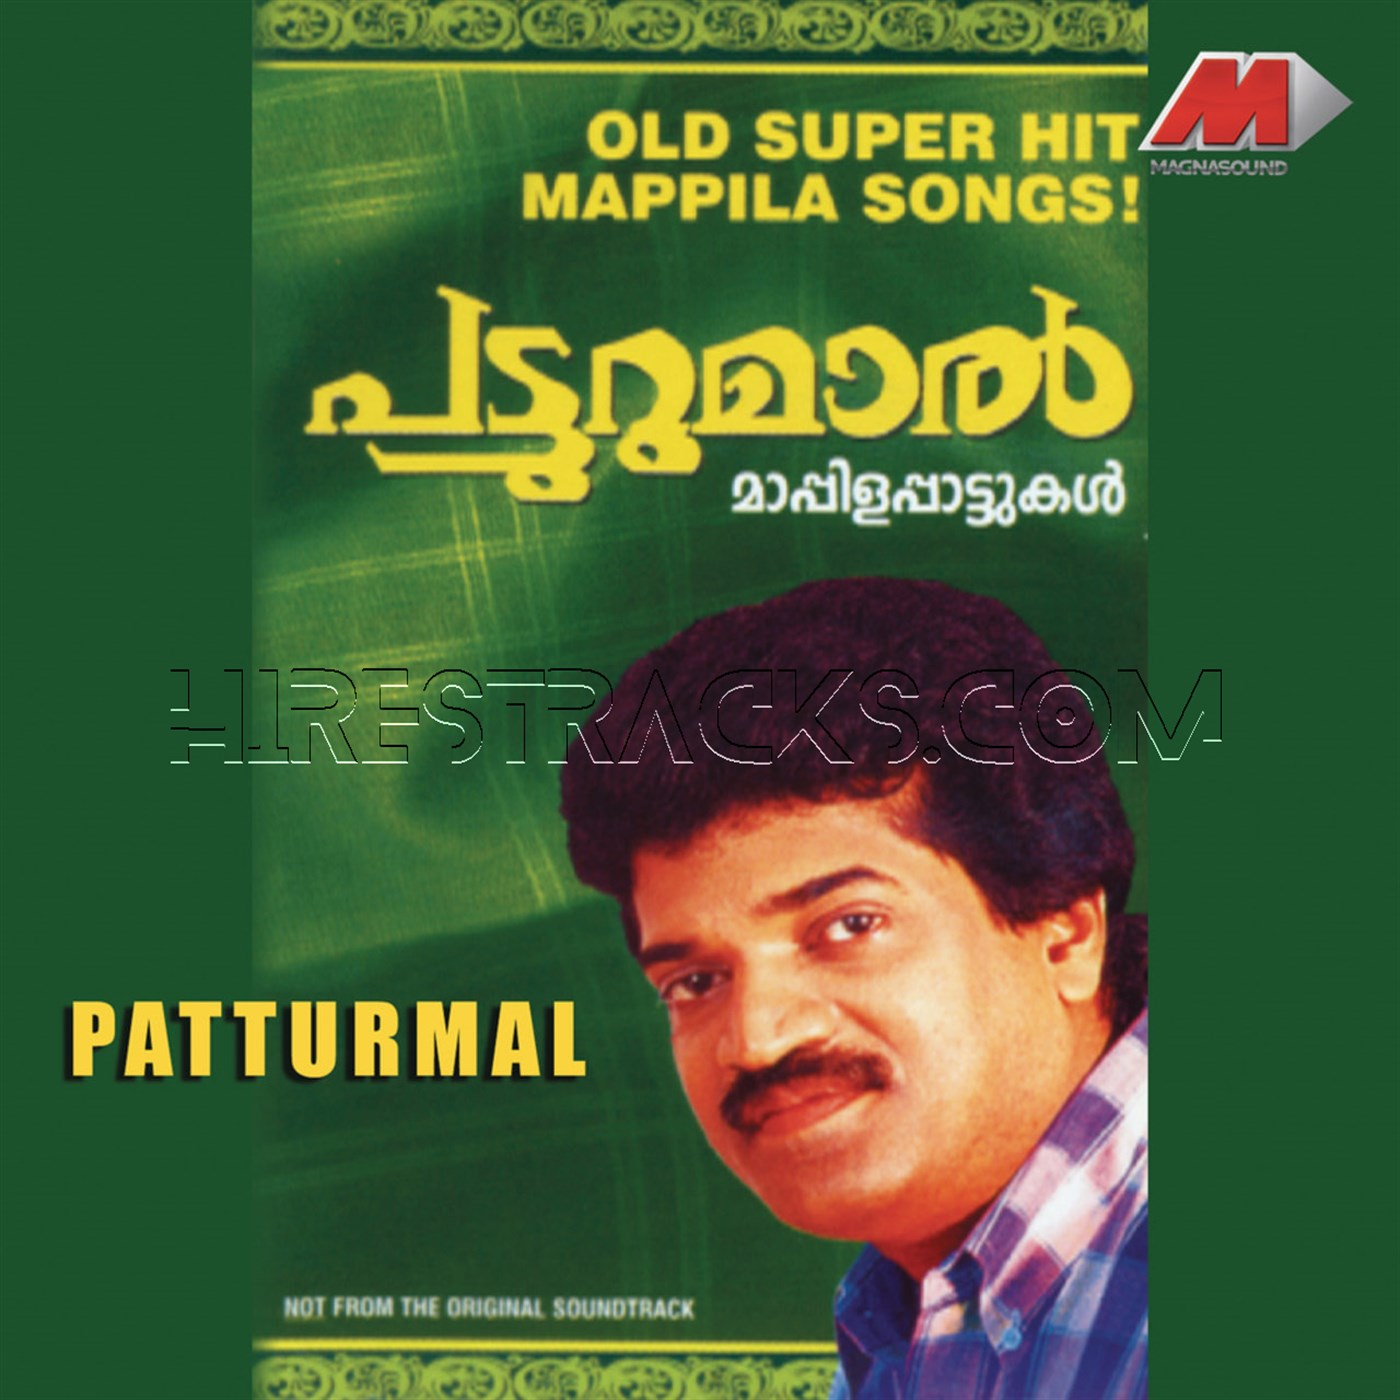 Patturumal-Mappila Songs (2013)